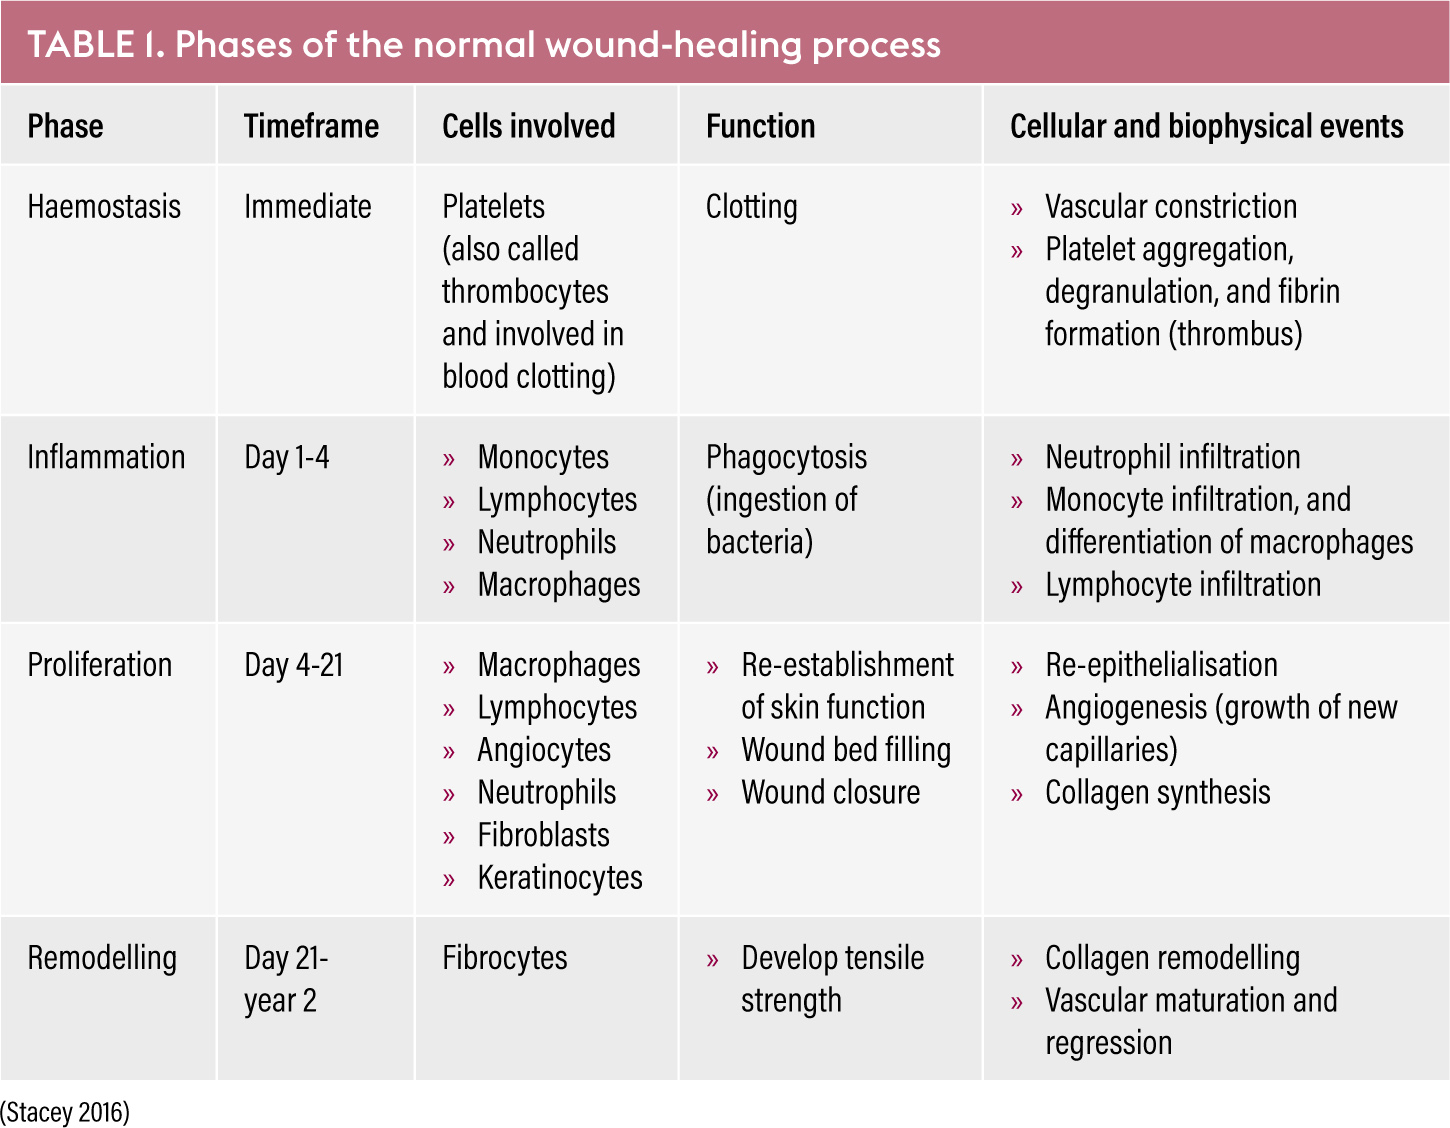 Clinical management of non-healing wounds